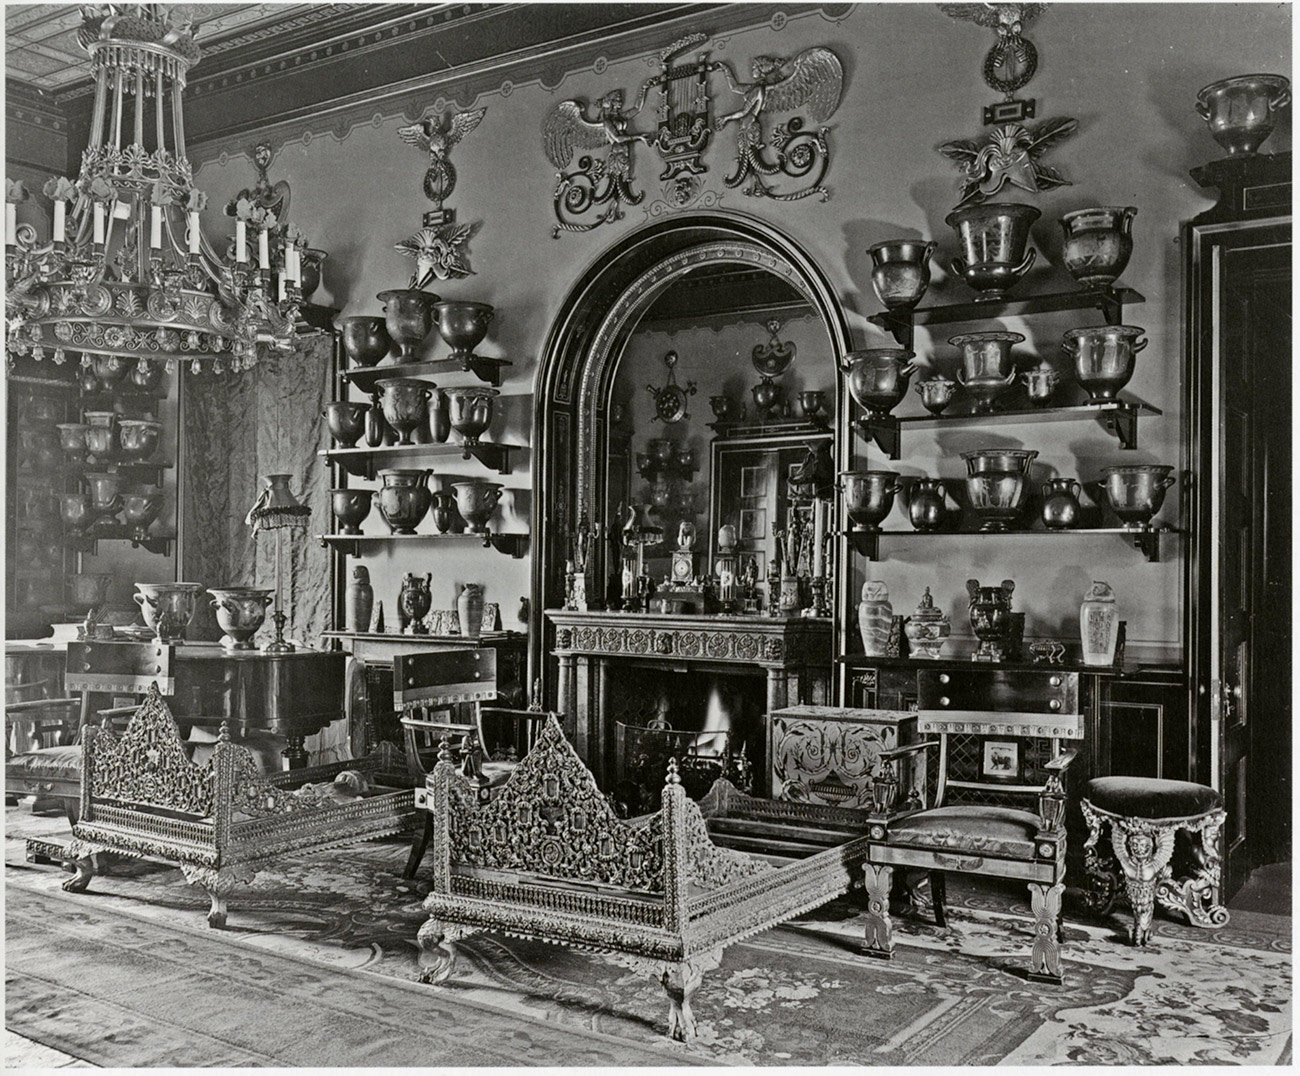 Black and white photo of an ornate Victorian interior with four rows of ancient Greek vases decorating the walls